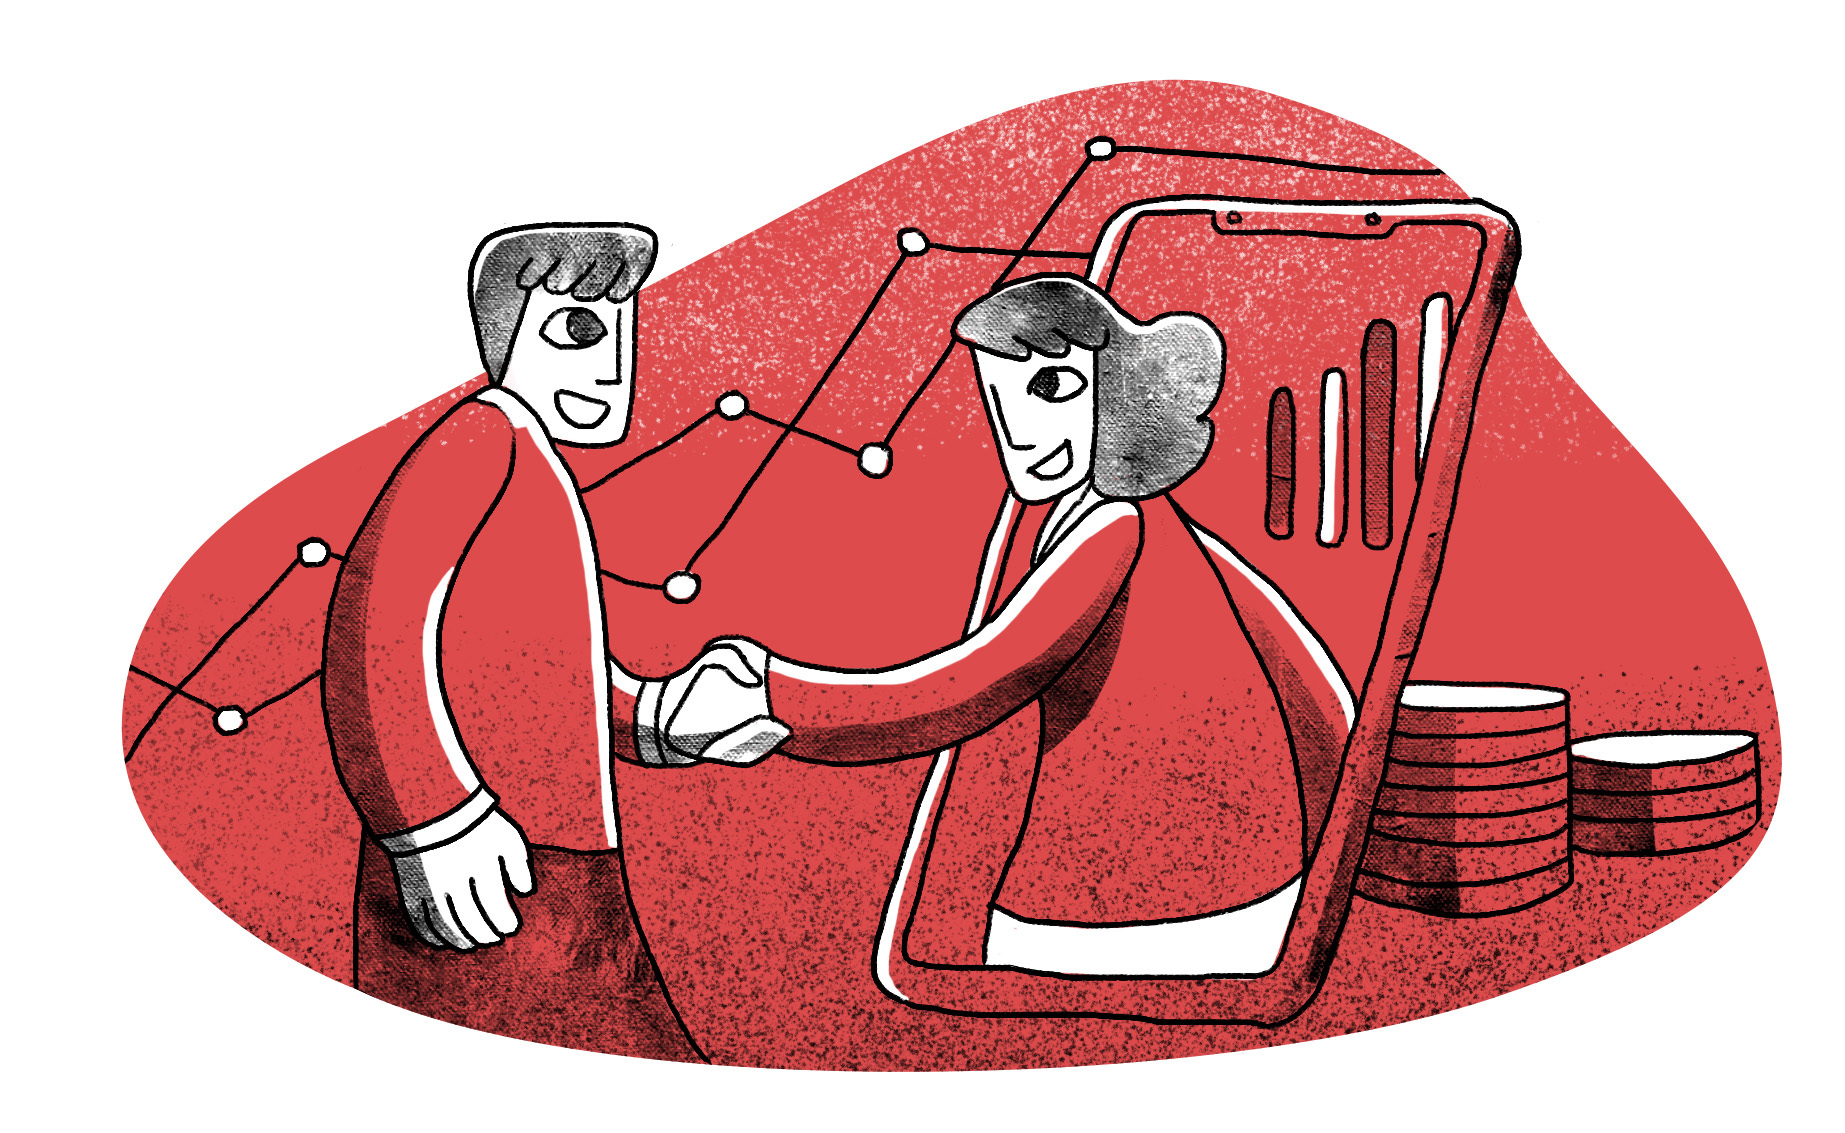 Main illustration of two people shaking hands, with one coming through a smartphone